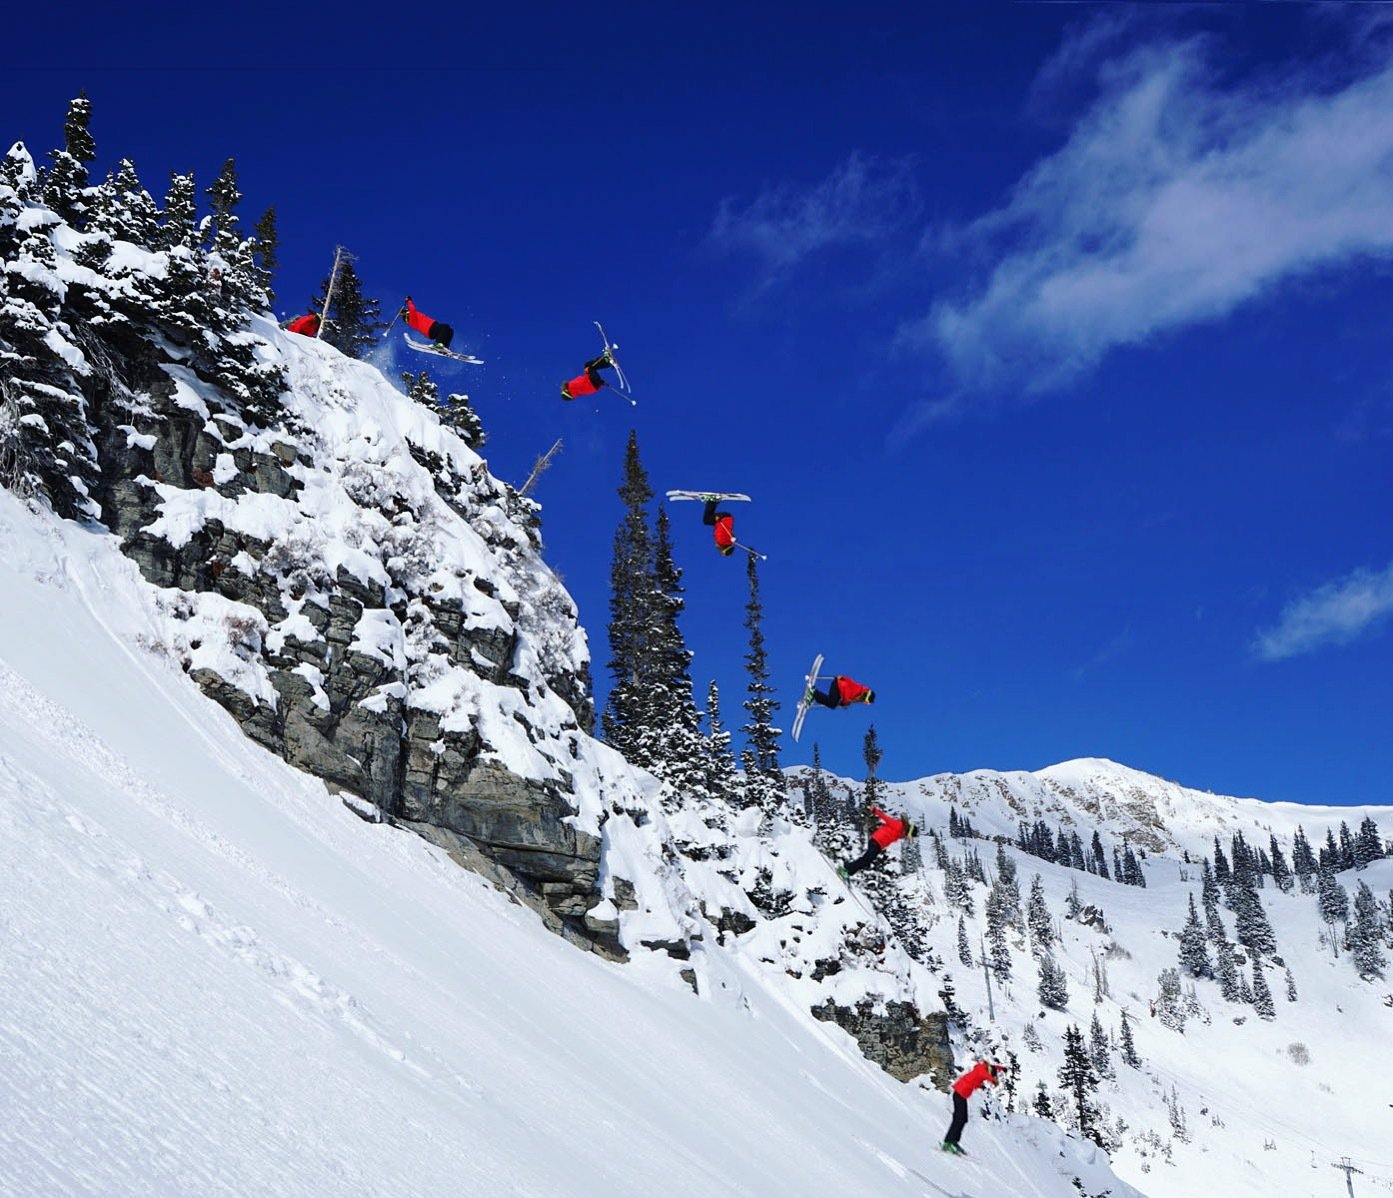 Sequence at Snowbird